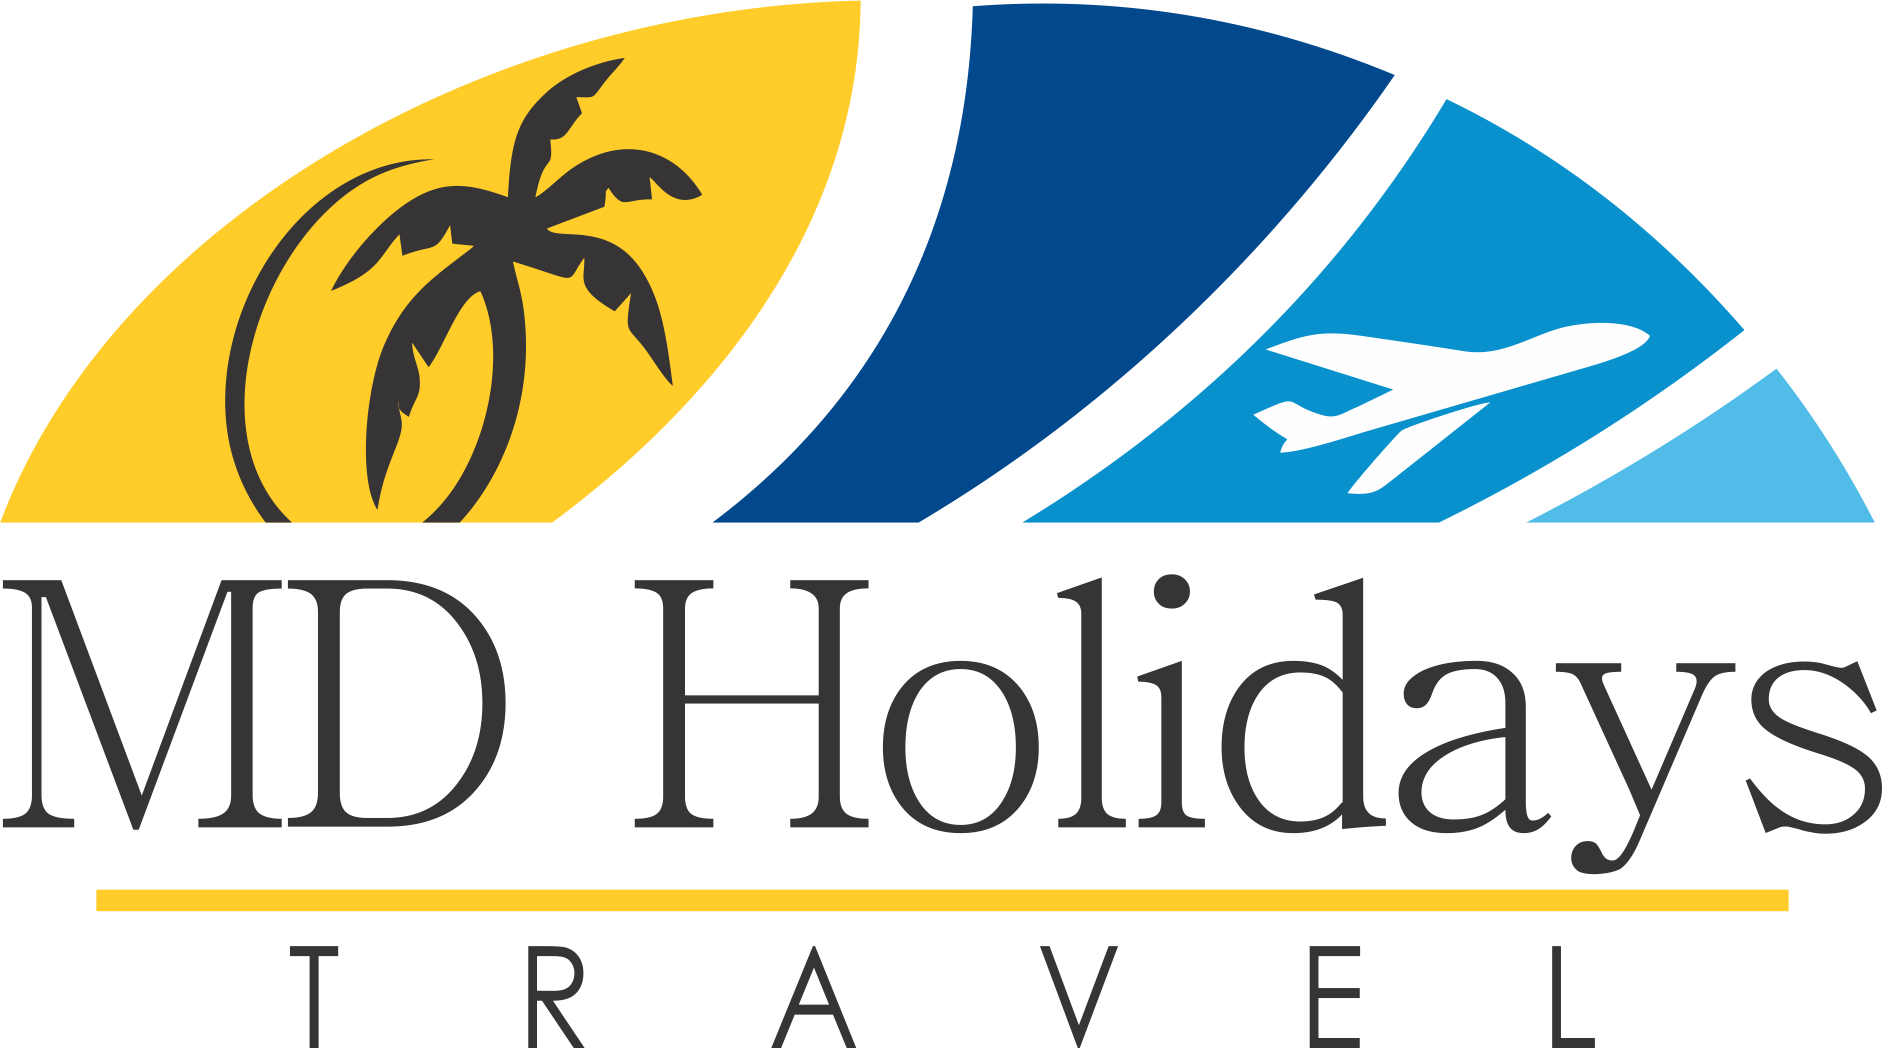 MD HOLIDAYS TRAVEL | Spania - MD HOLIDAYS TRAVEL